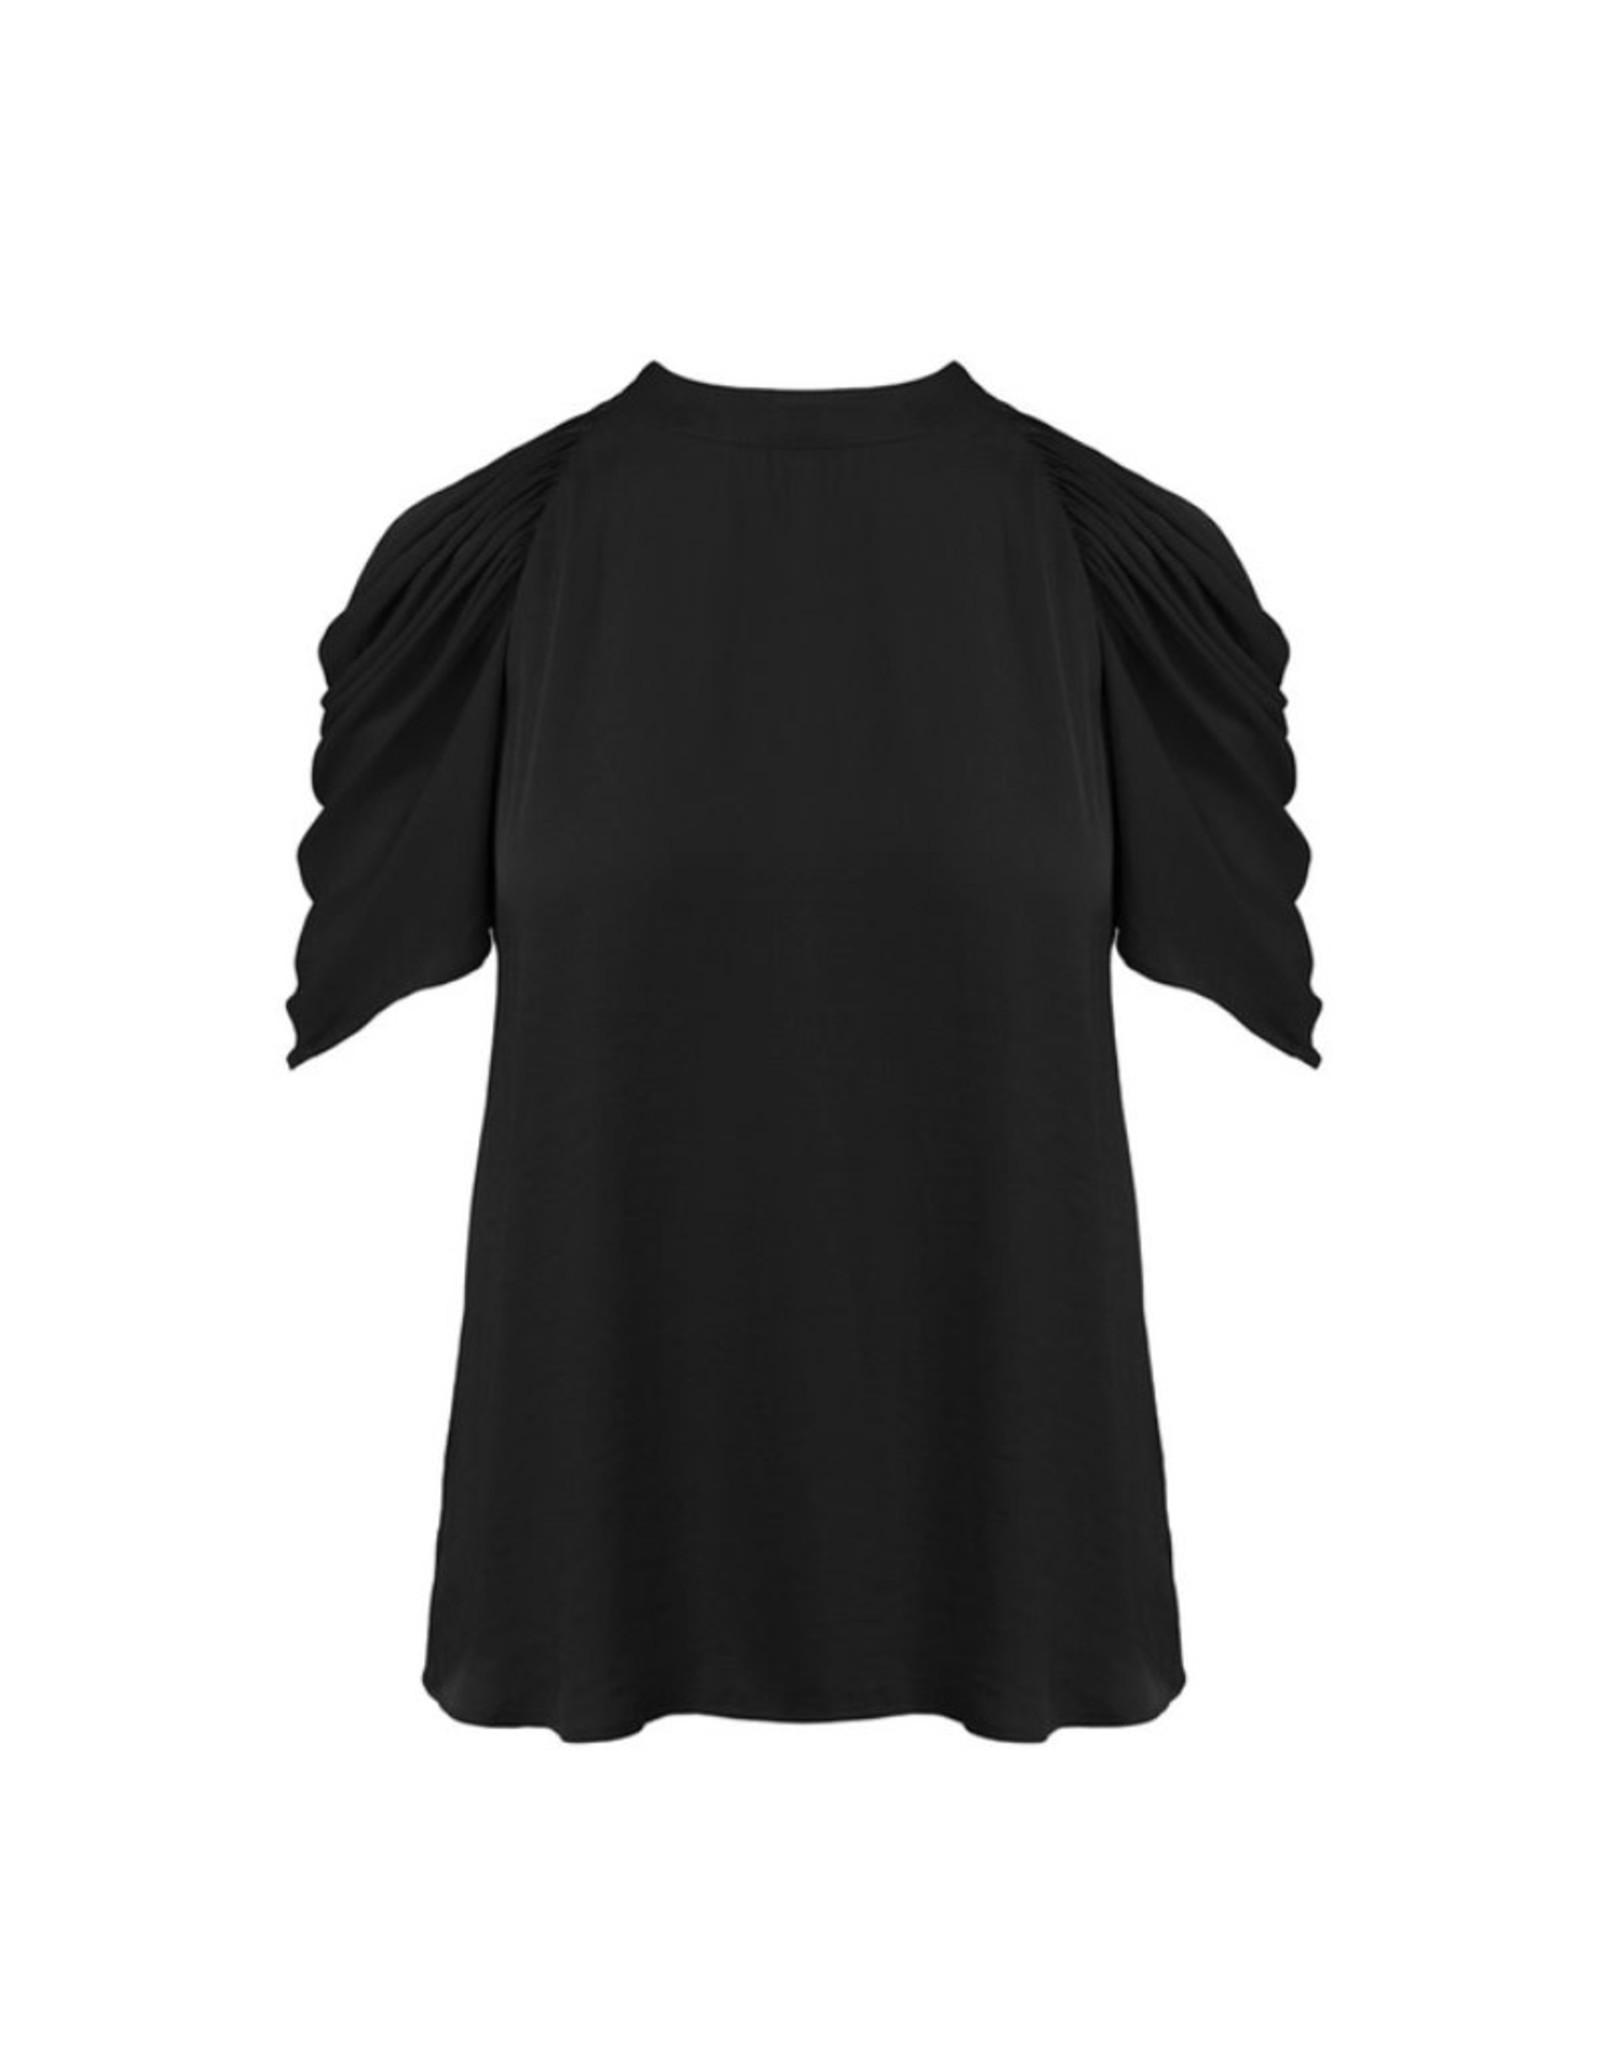 Ruched Sleeve Top with Key Hole Back